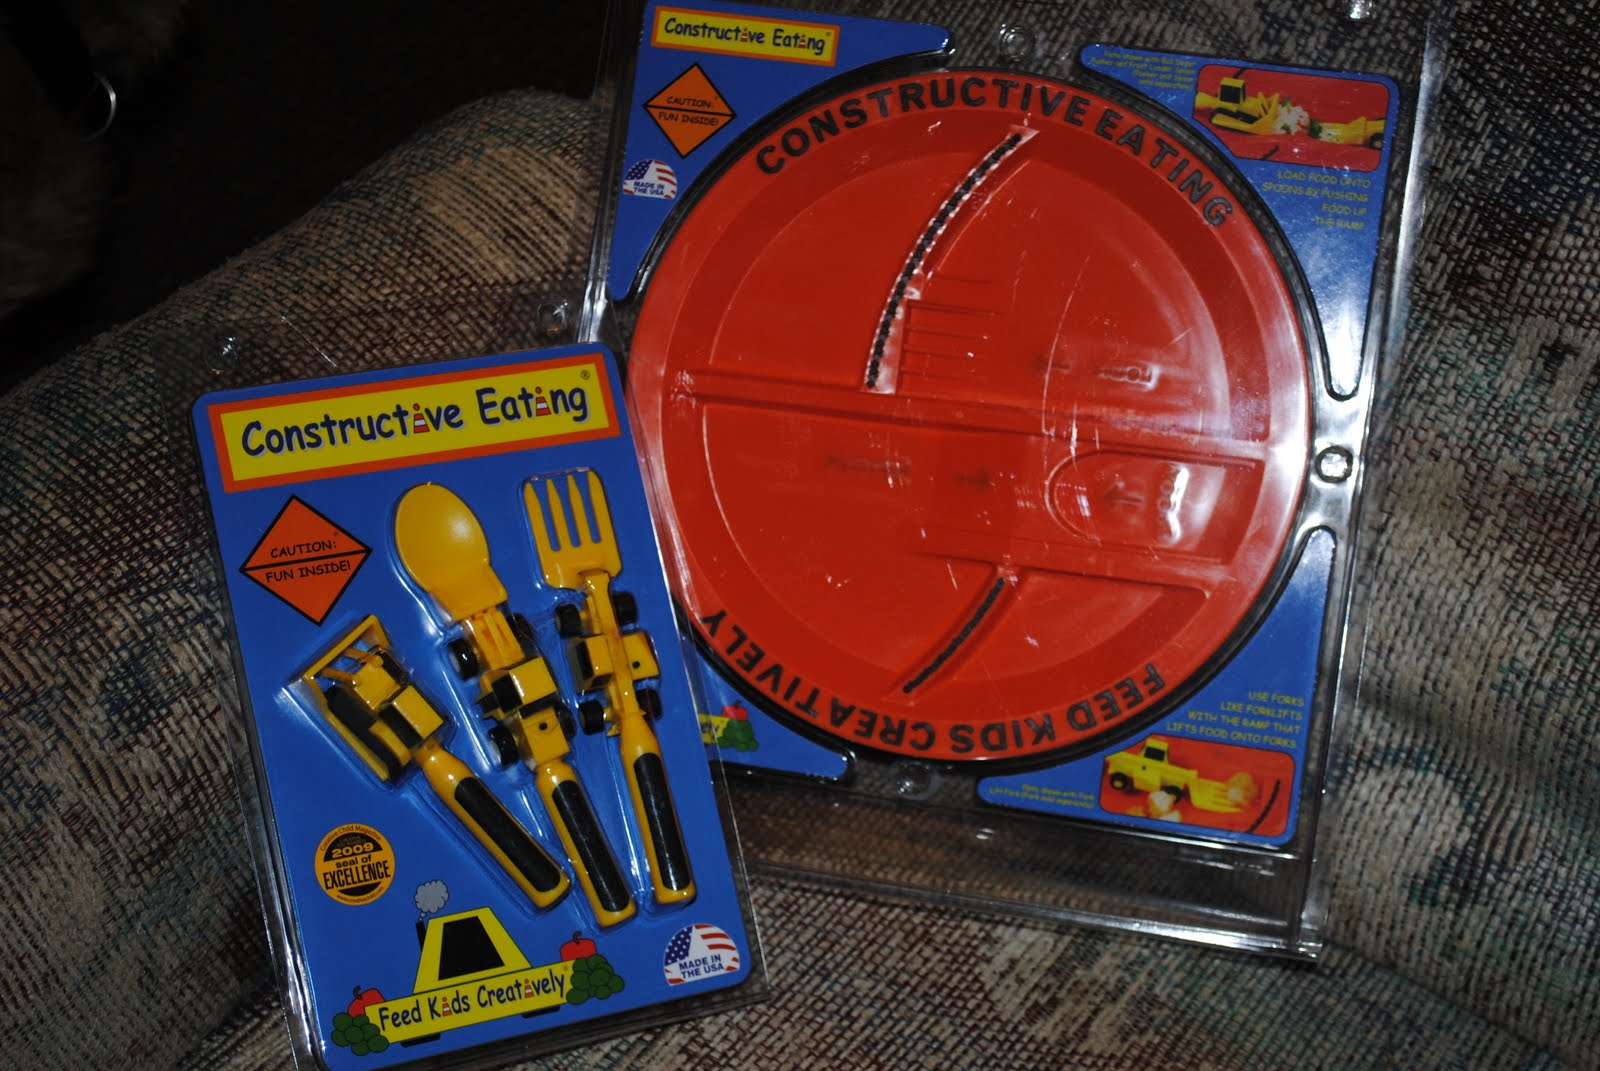 Buy It Visit Constructive Eating to buy yours today! The Construction Plate is $14.95 and the Constructive Eating Utensils Set is $19.95. & Constructive Eating Plate and Utensils Review and Giveaway CLOSED ...